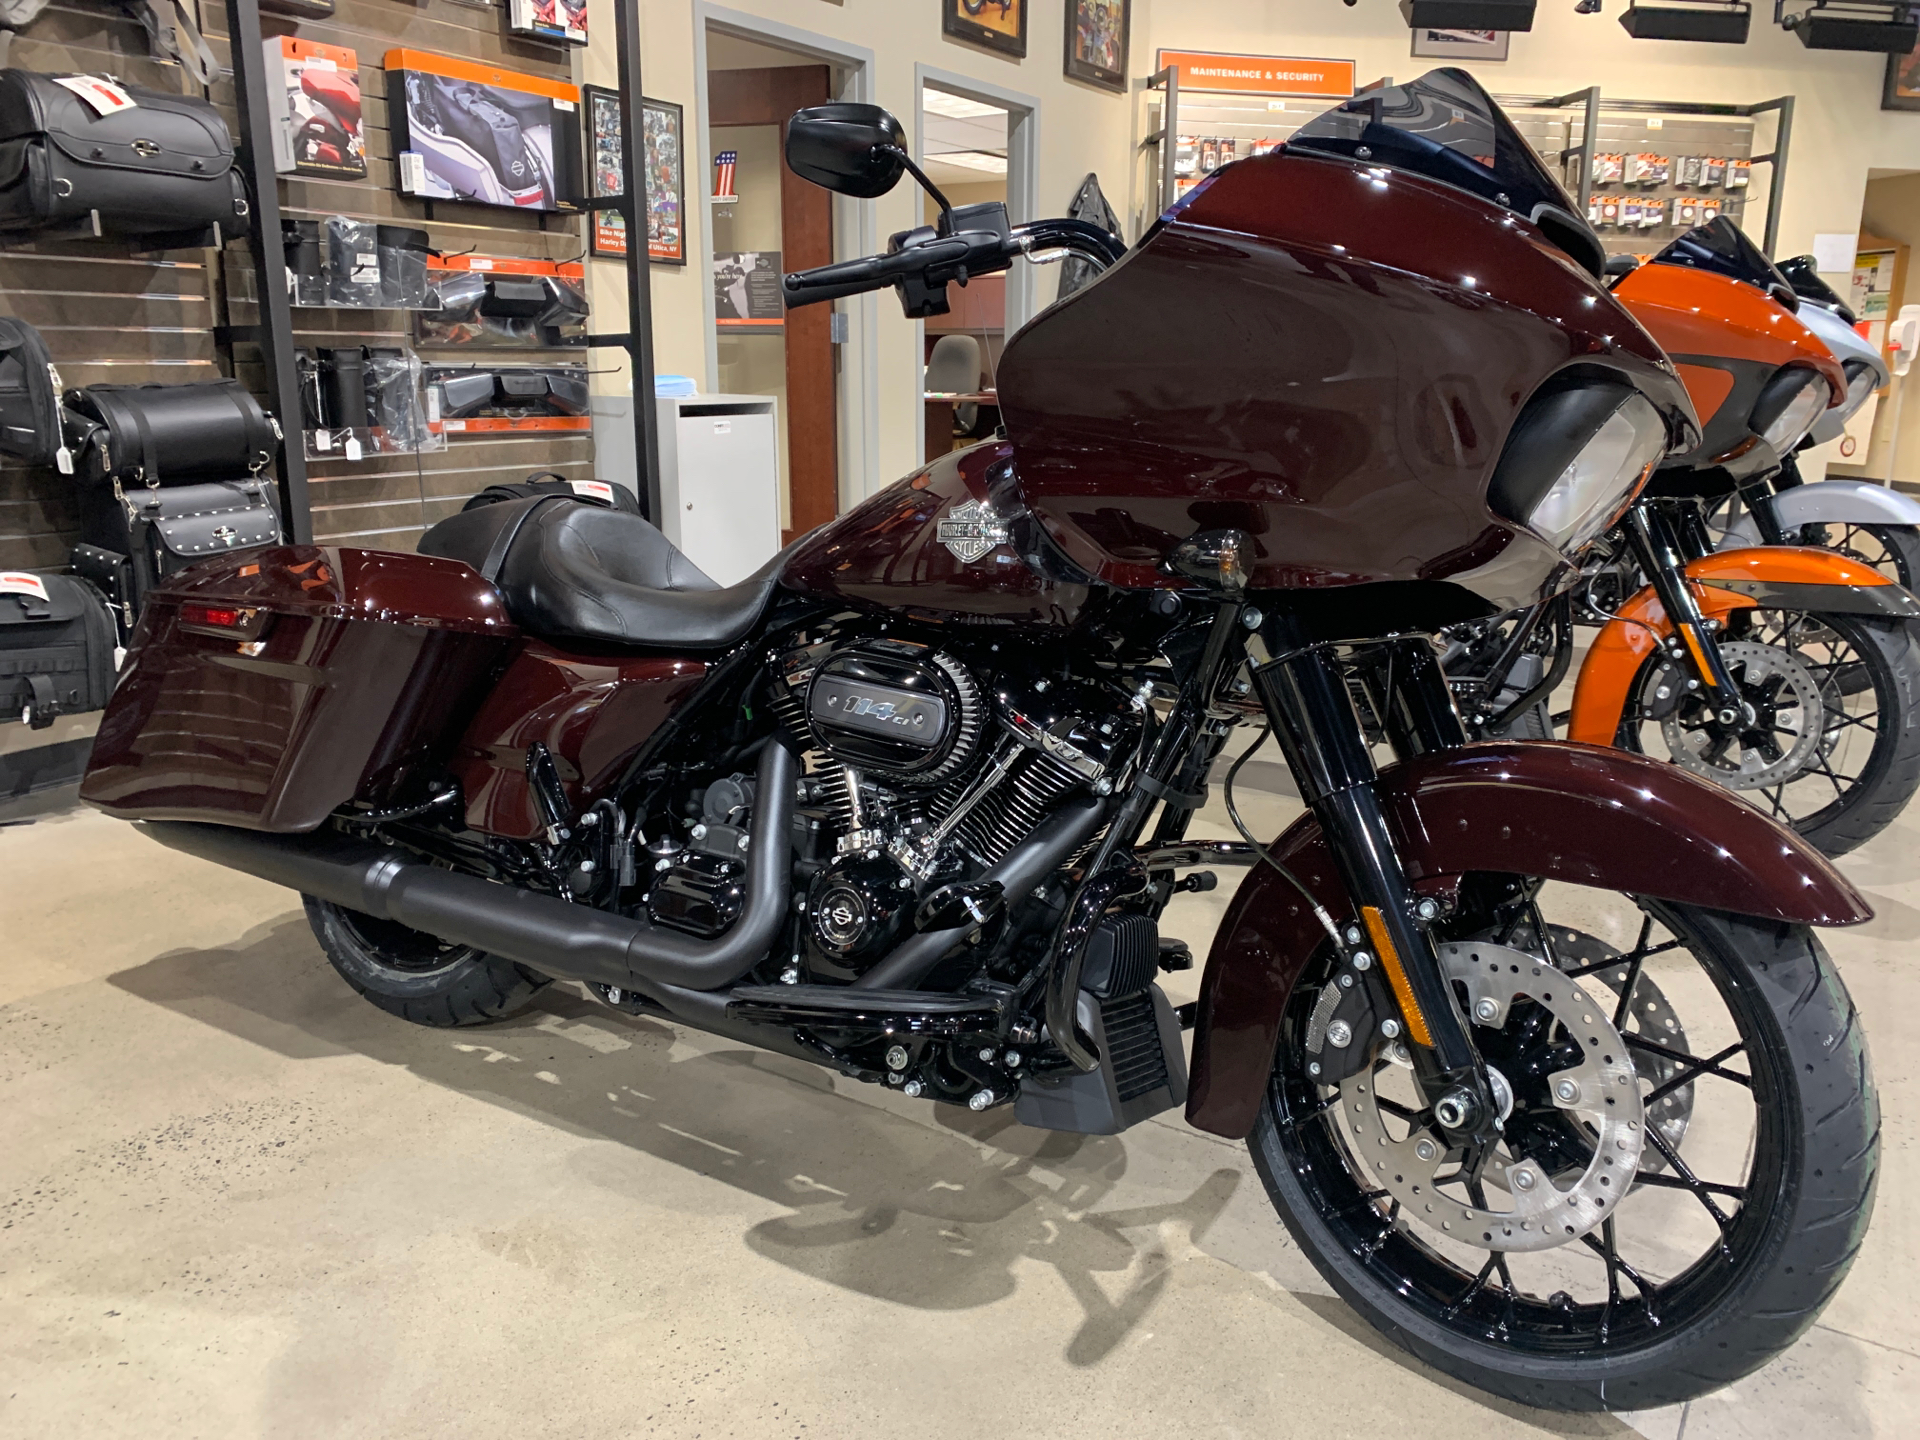 New 2021 Harley-Davidson Road Glide® Special Midnight Crimson (Black Pearl  Option) | Motorcycles in New York Mills NY | MB600486